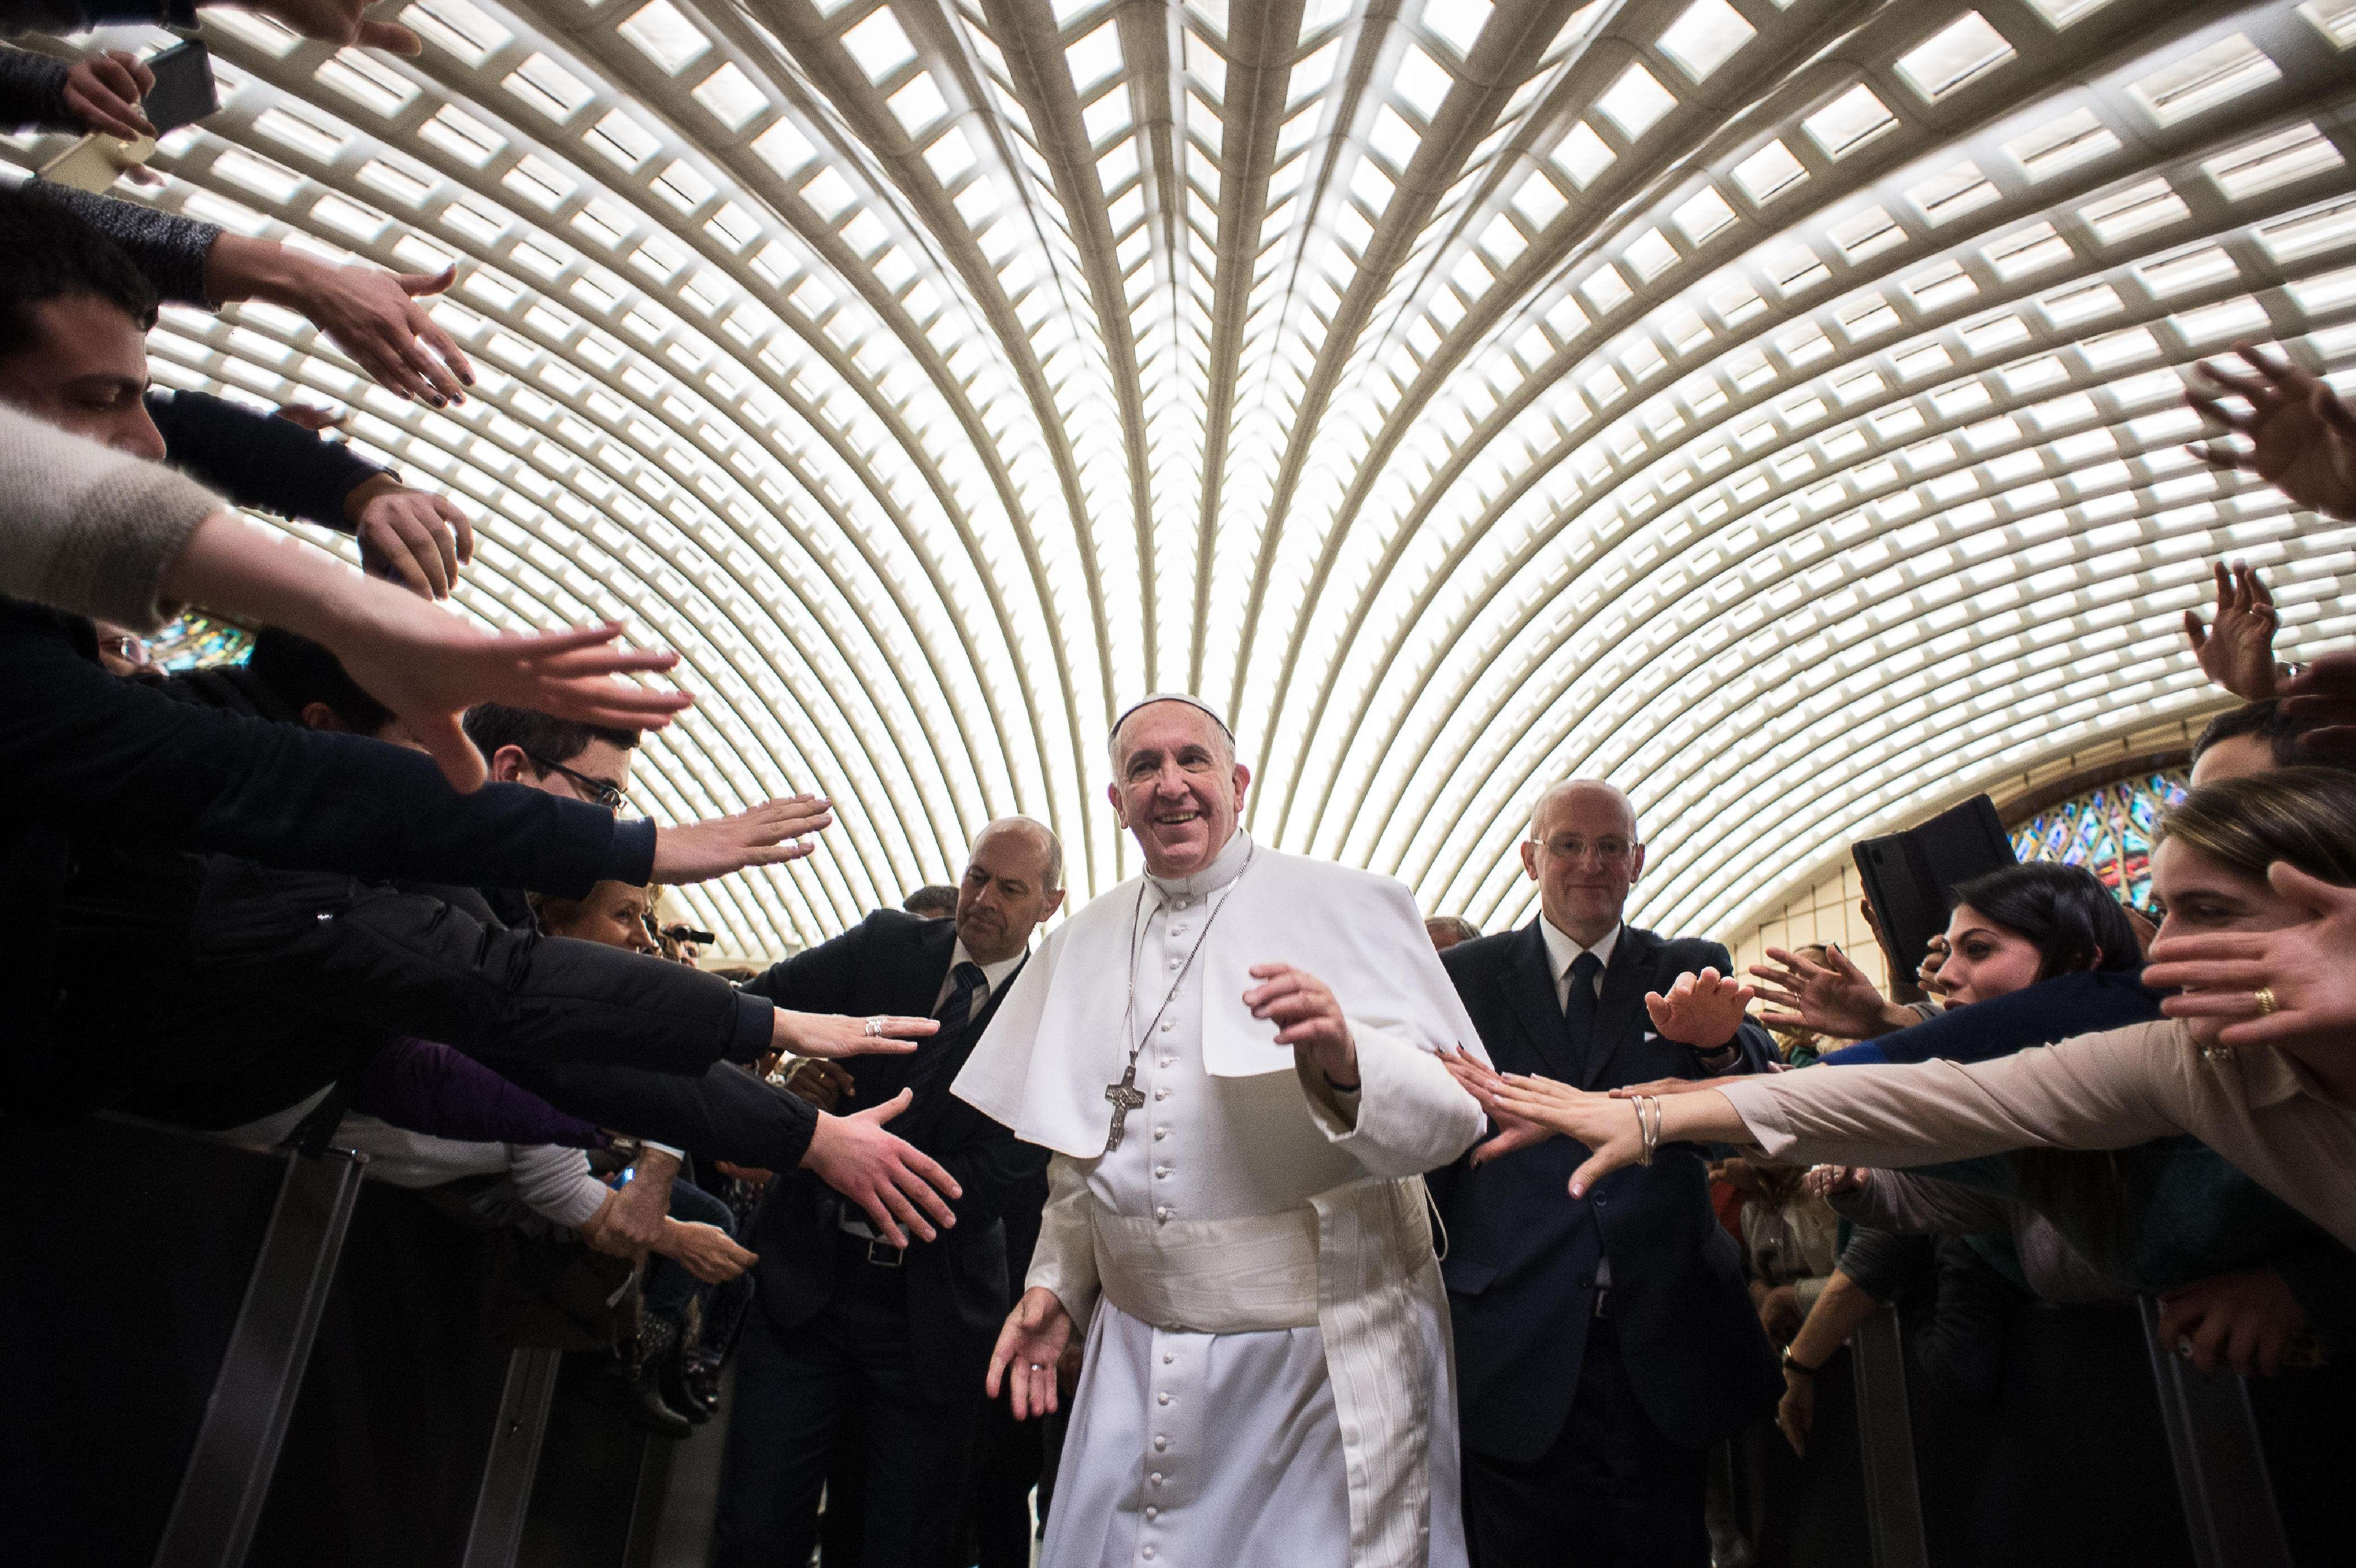 Pope Francis attends a special audience for the Cassano allo Jonio diocese at the Vatican on Feb.21, 2015.